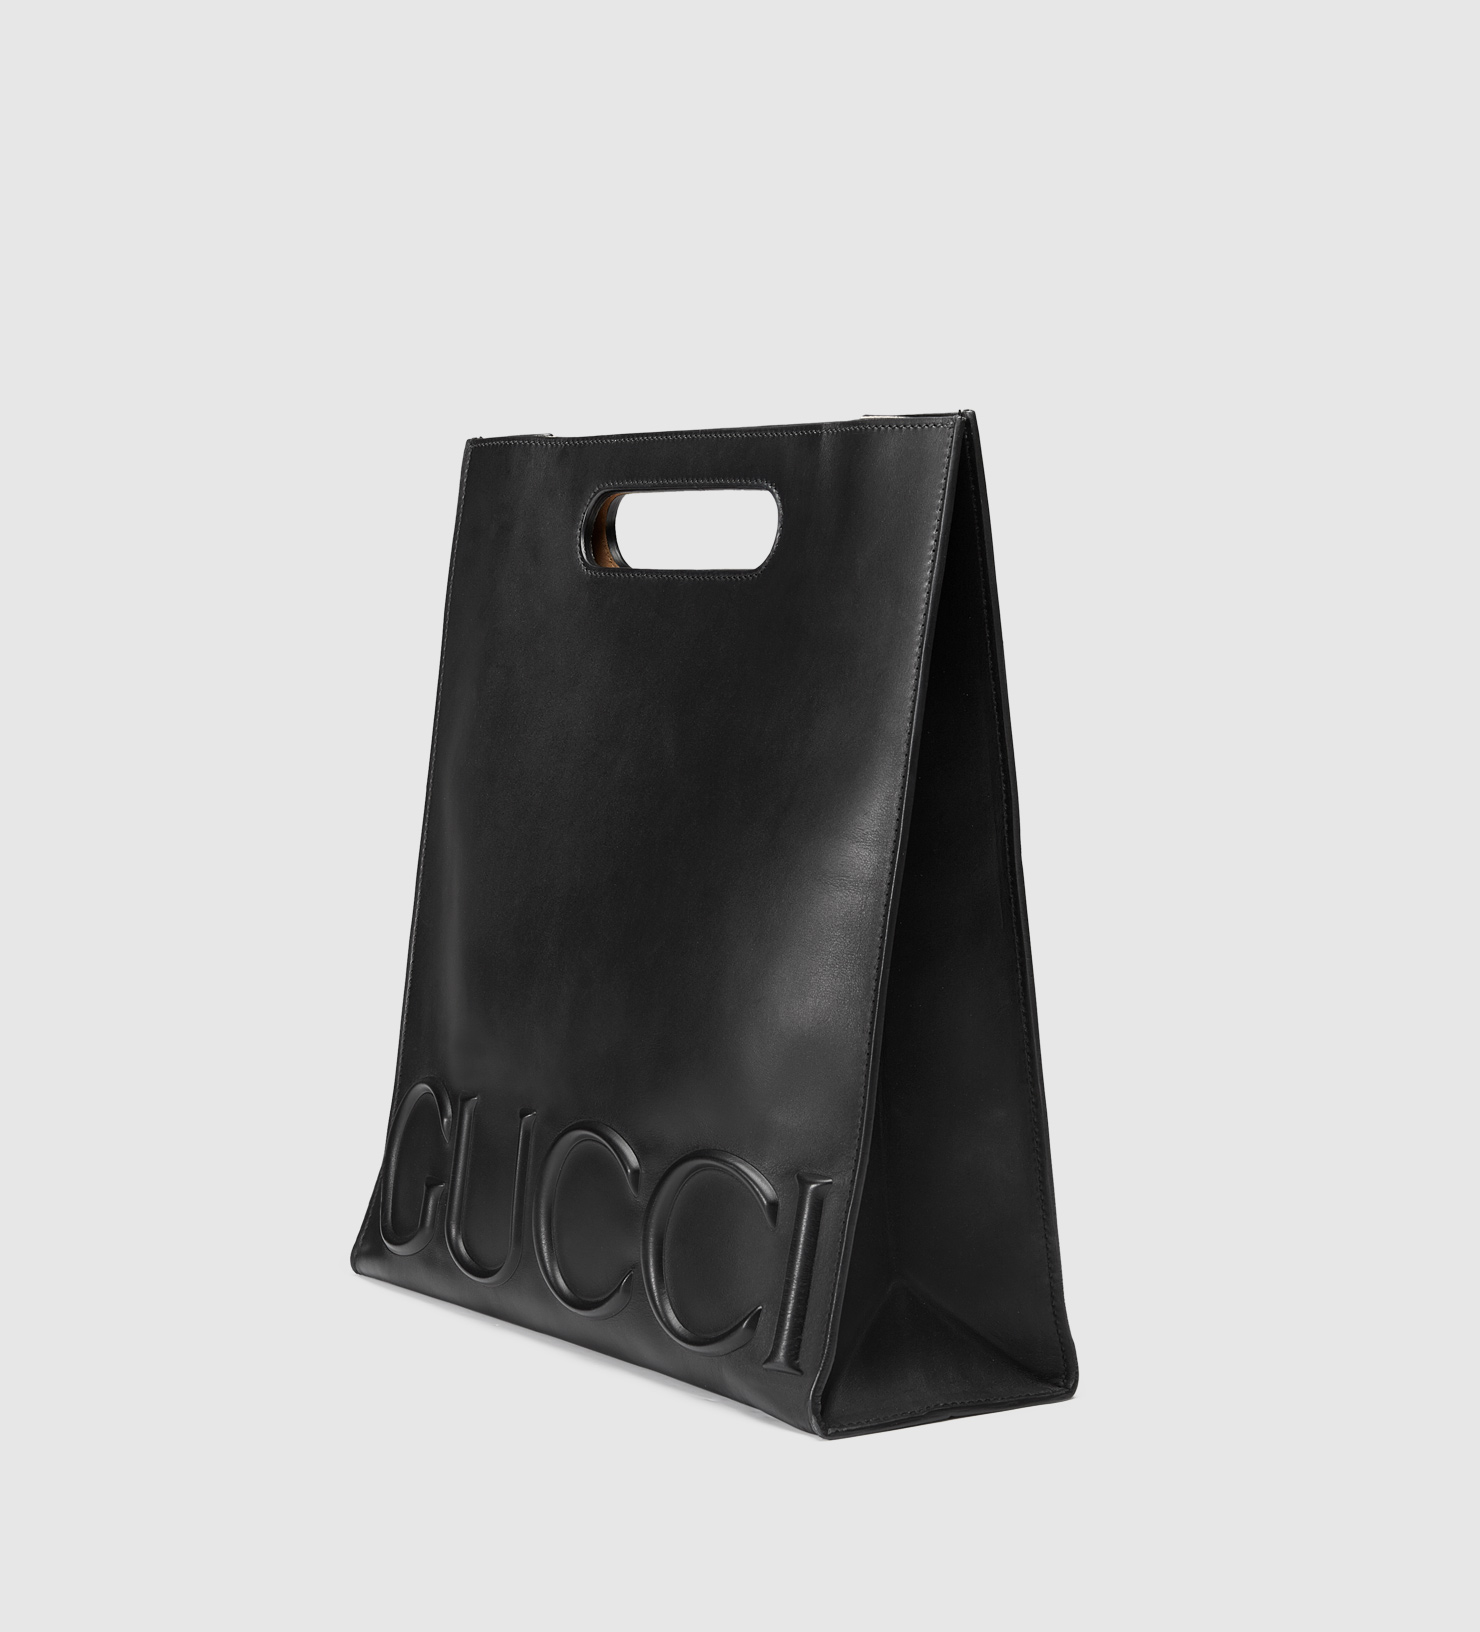 3837bd31301599 Gucci Xl Leather Tote in Black - Lyst